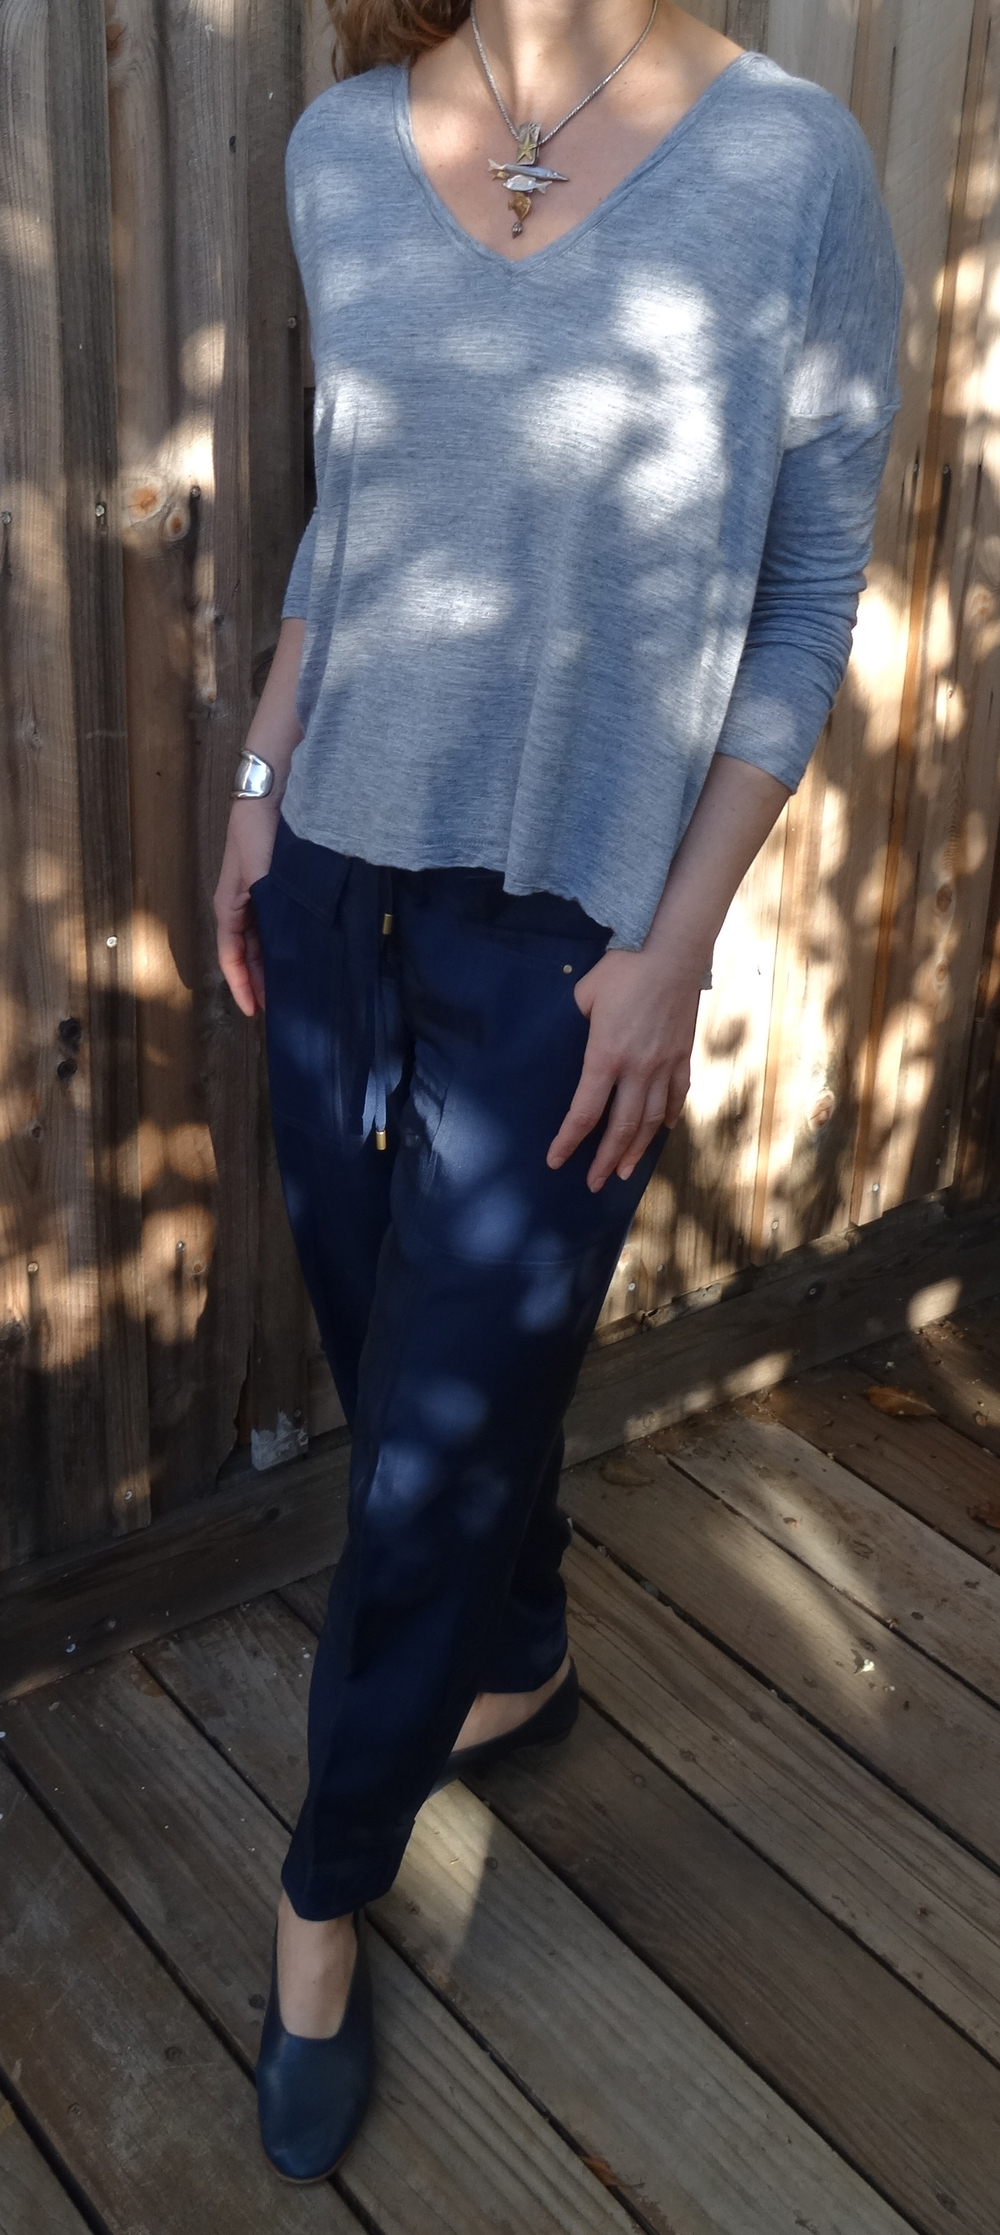 How do you balance this necklace? With a Madewell Long sleeve Tee, navy blue silk DVF parachute pants, a Tiffany's Elsa Peretti cuff and Martiniano Shoes:)